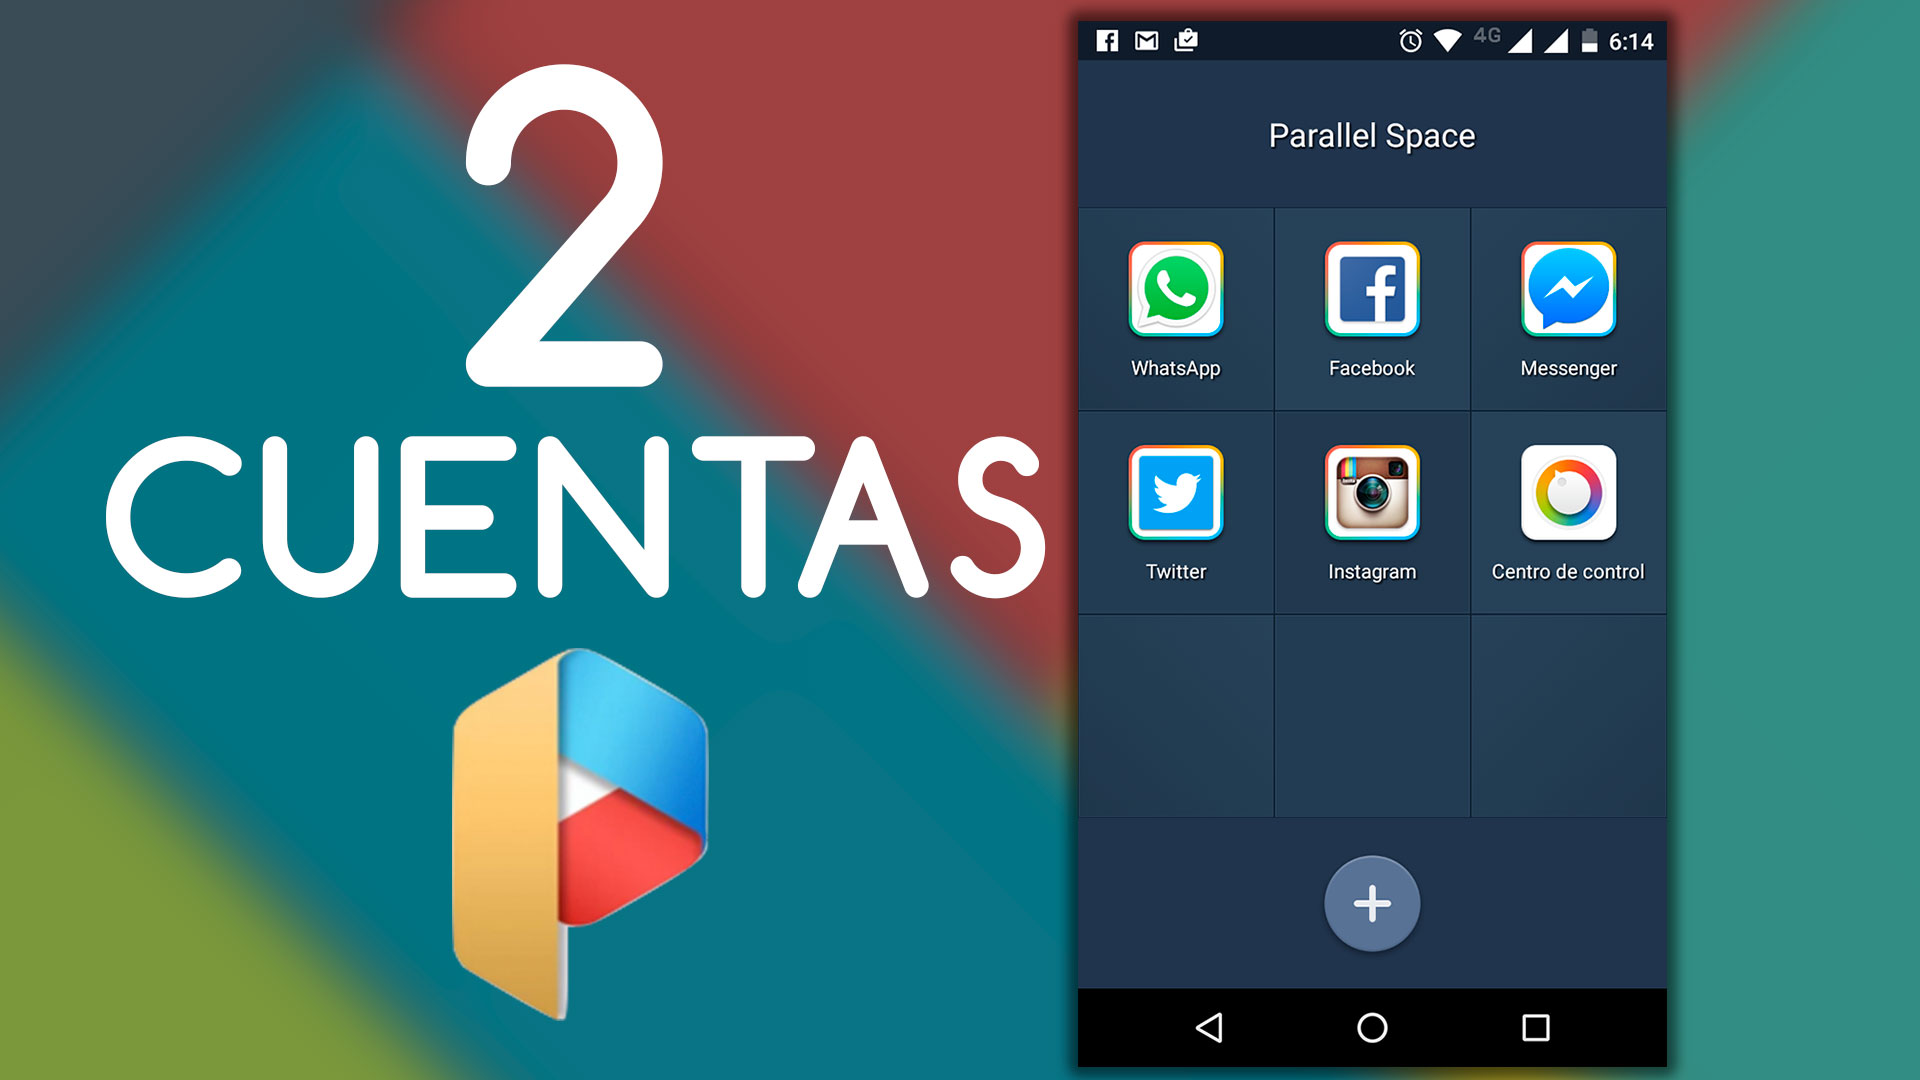 Parallel 2 cuentas de una Red Social en Android